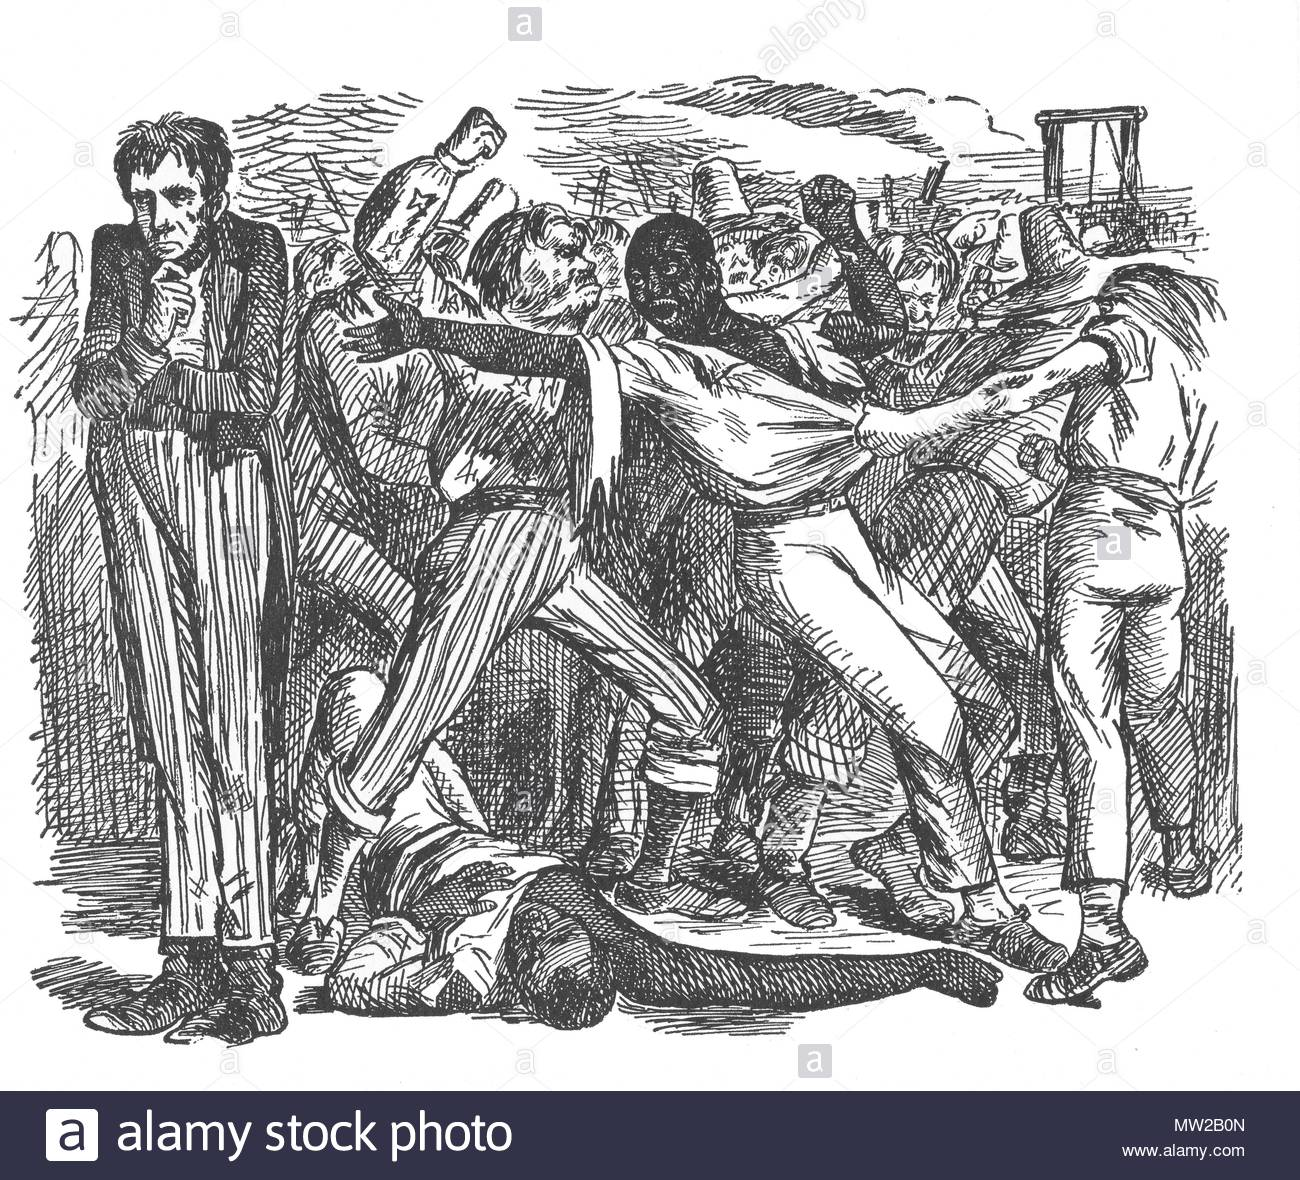 """Plate 23: """"Rowdy Notions of Emancipation,"""" published in Punch, on August 8, 1863. Stock Photo"""